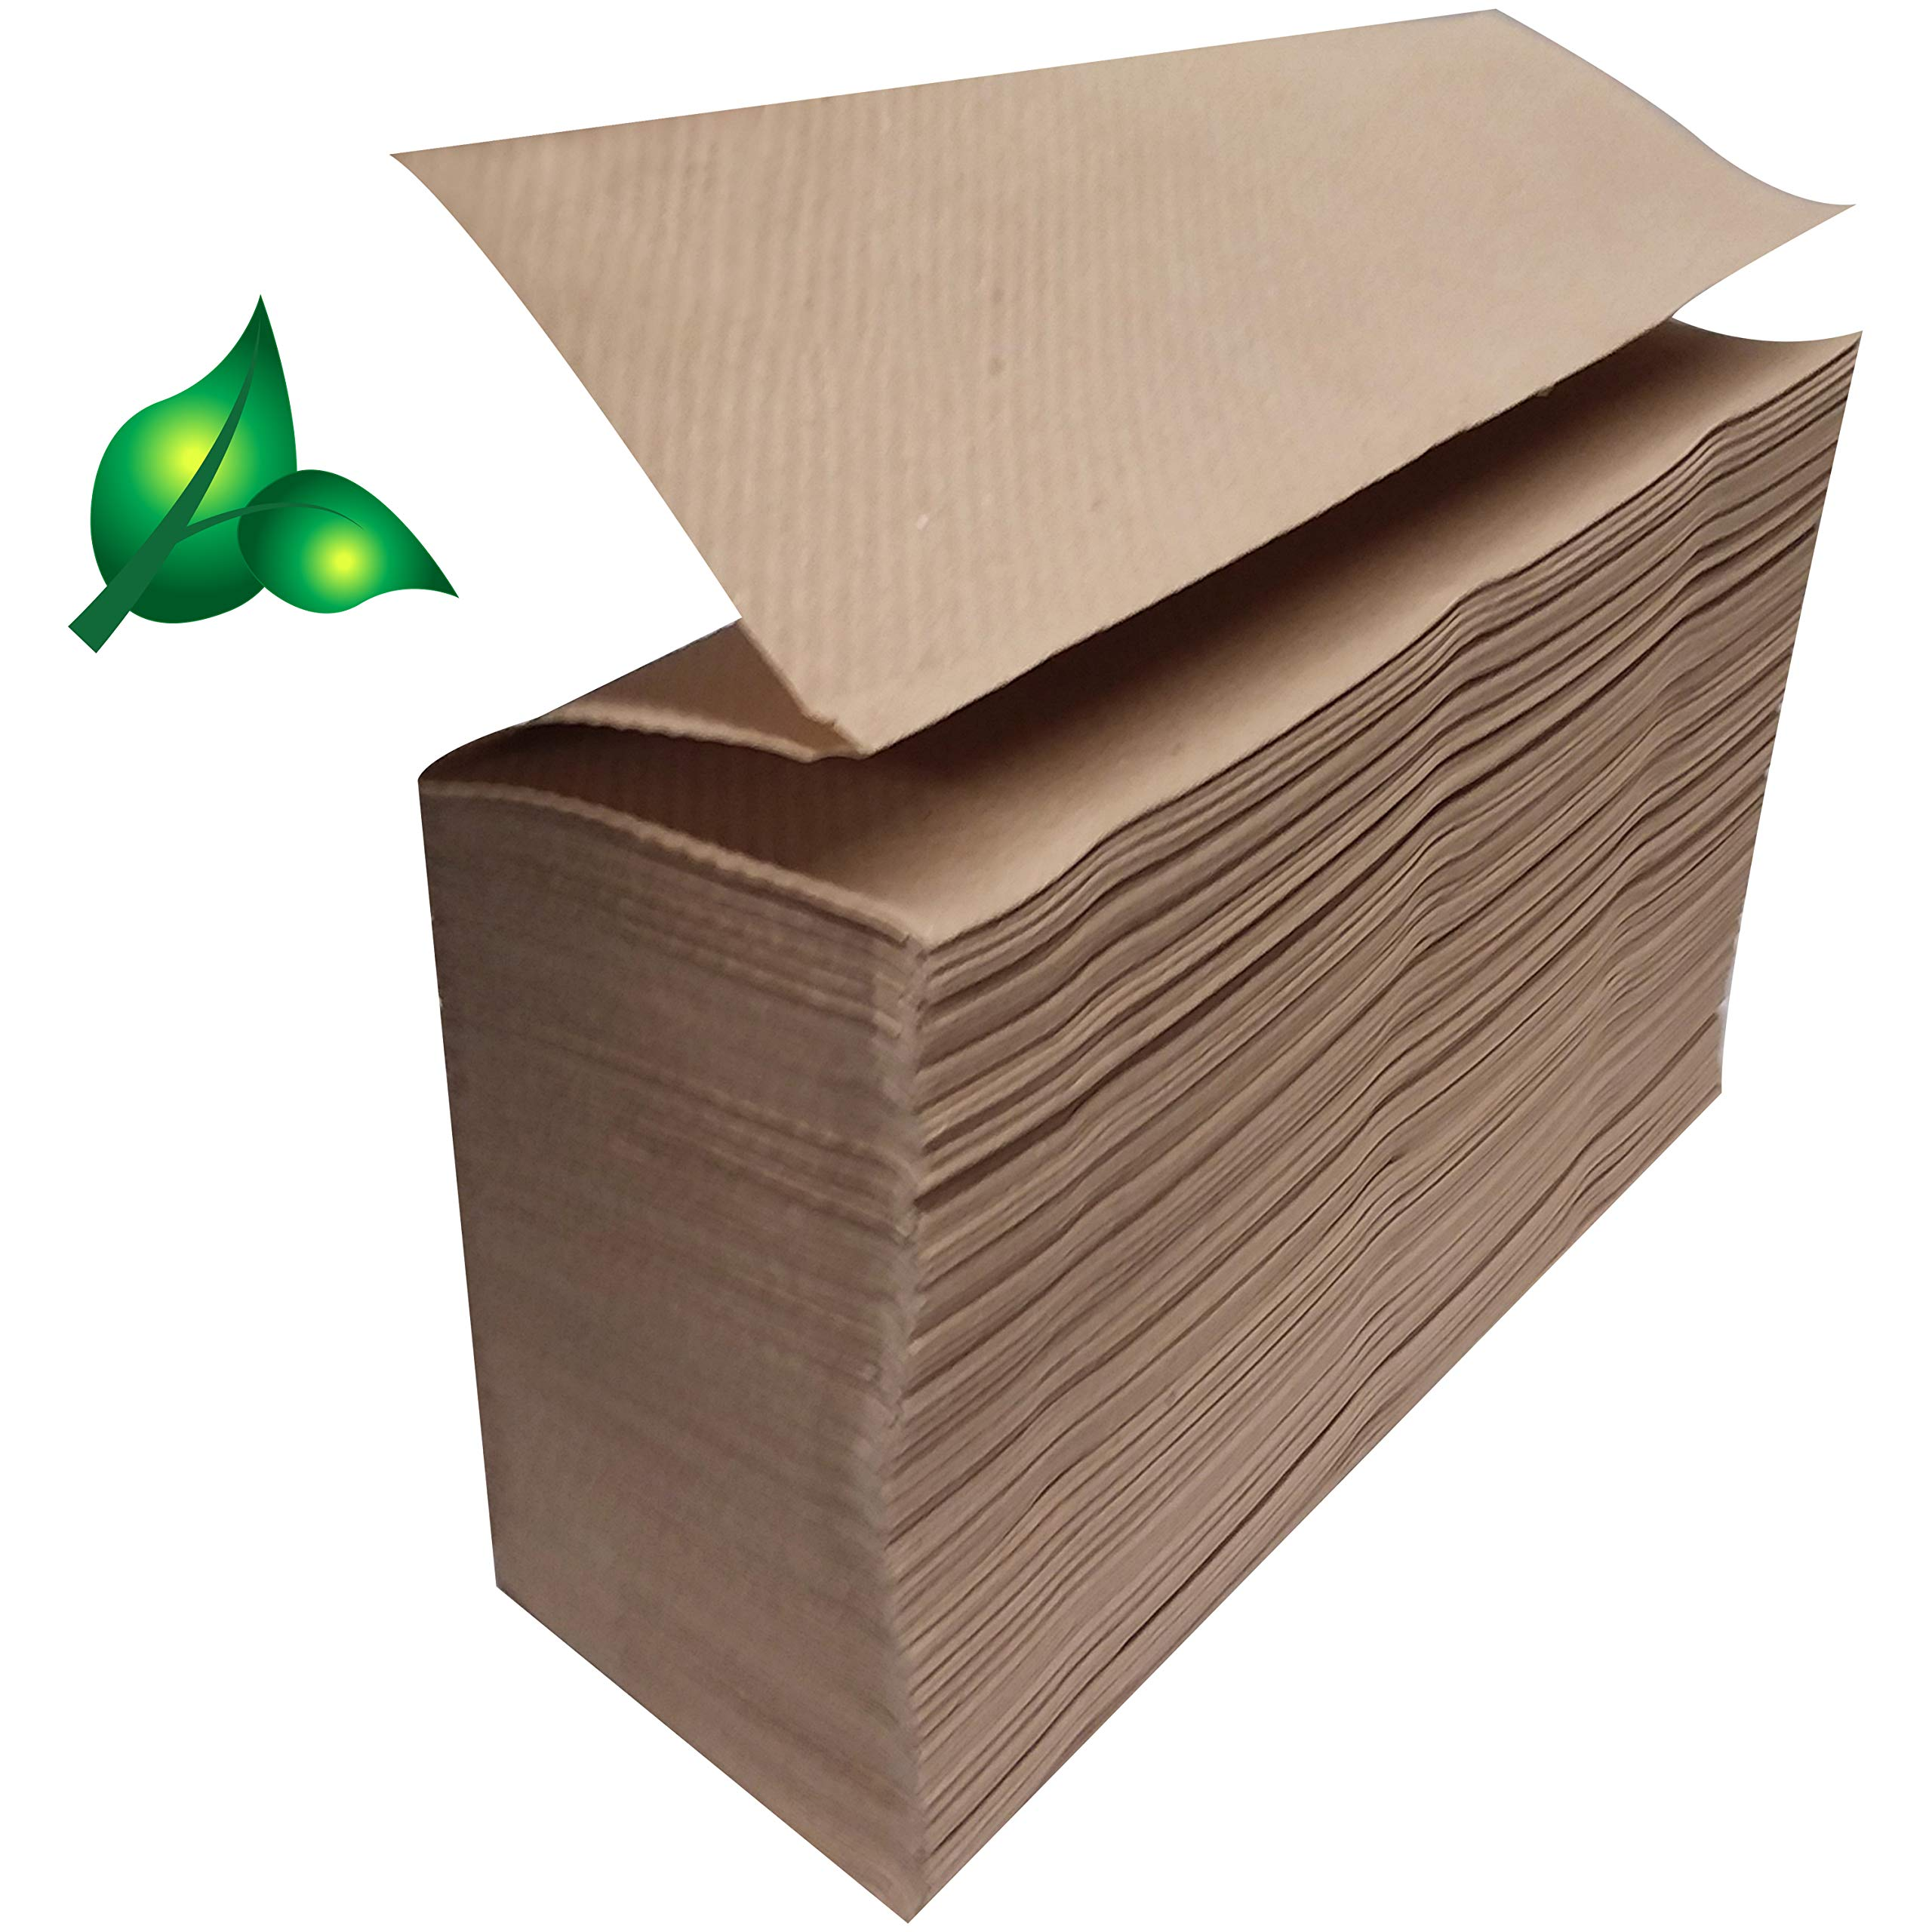 Recycled Unbleached Eco Paper Towels, 1000 Z Multifold Brown Organic 100% Post Consumer Waste